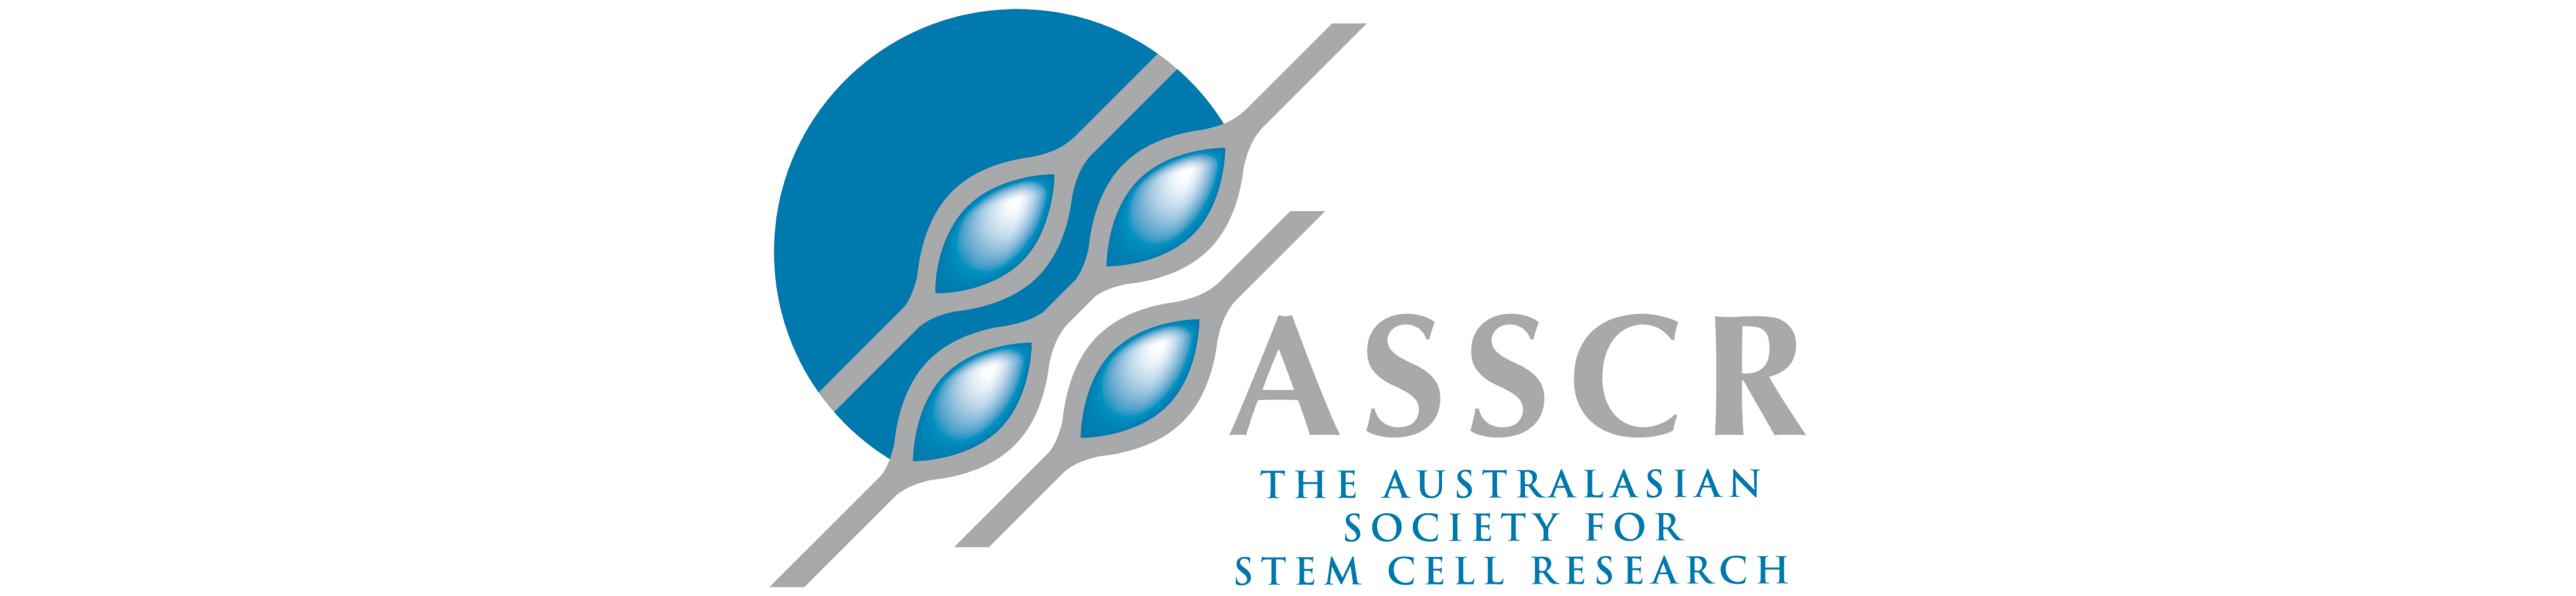 Australasian Society for Stem Cell Research